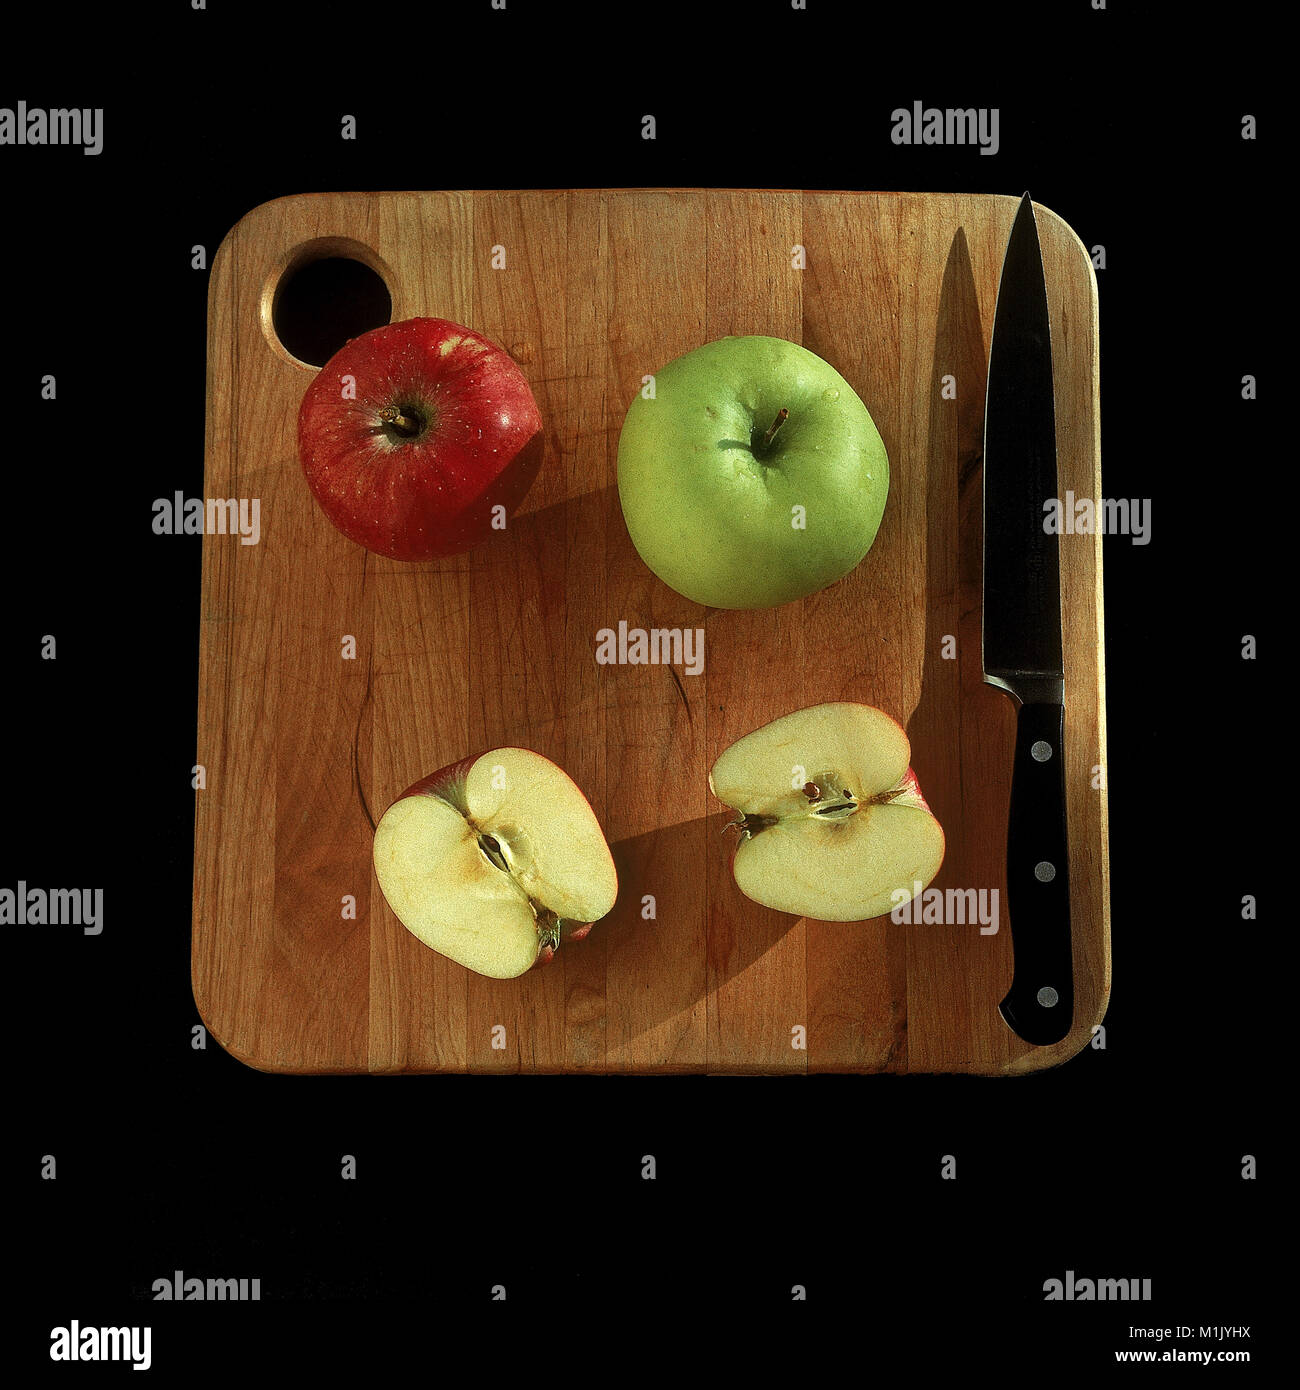 Washington state grown Red Delicious and Granny Smith apples ready to eat on cutting board. - Stock Image